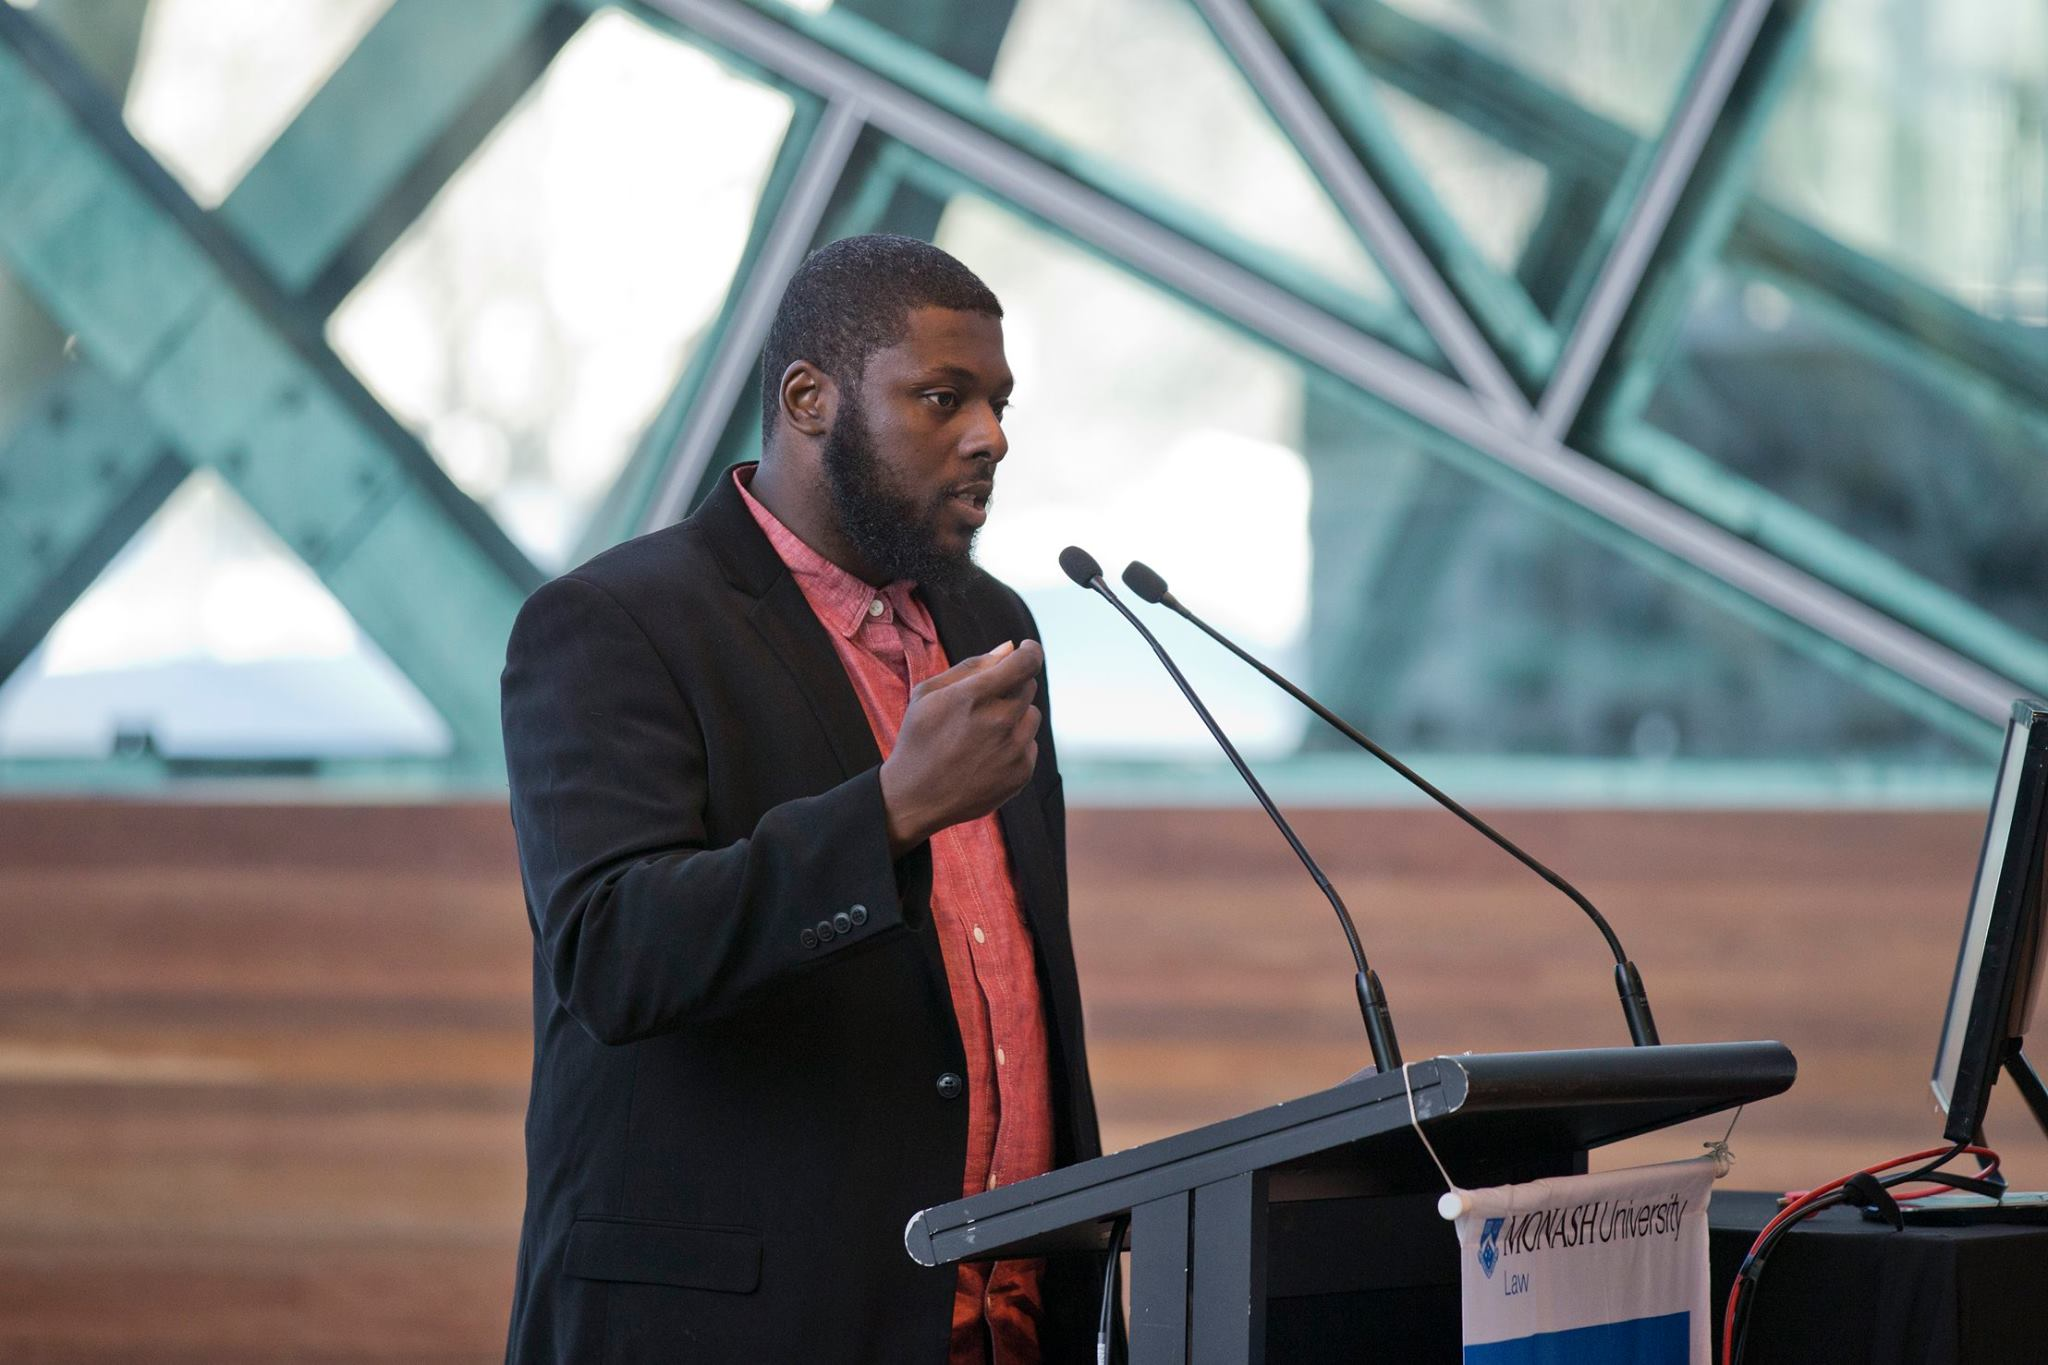 Tory Russell speaking at the 2016 Castan conference